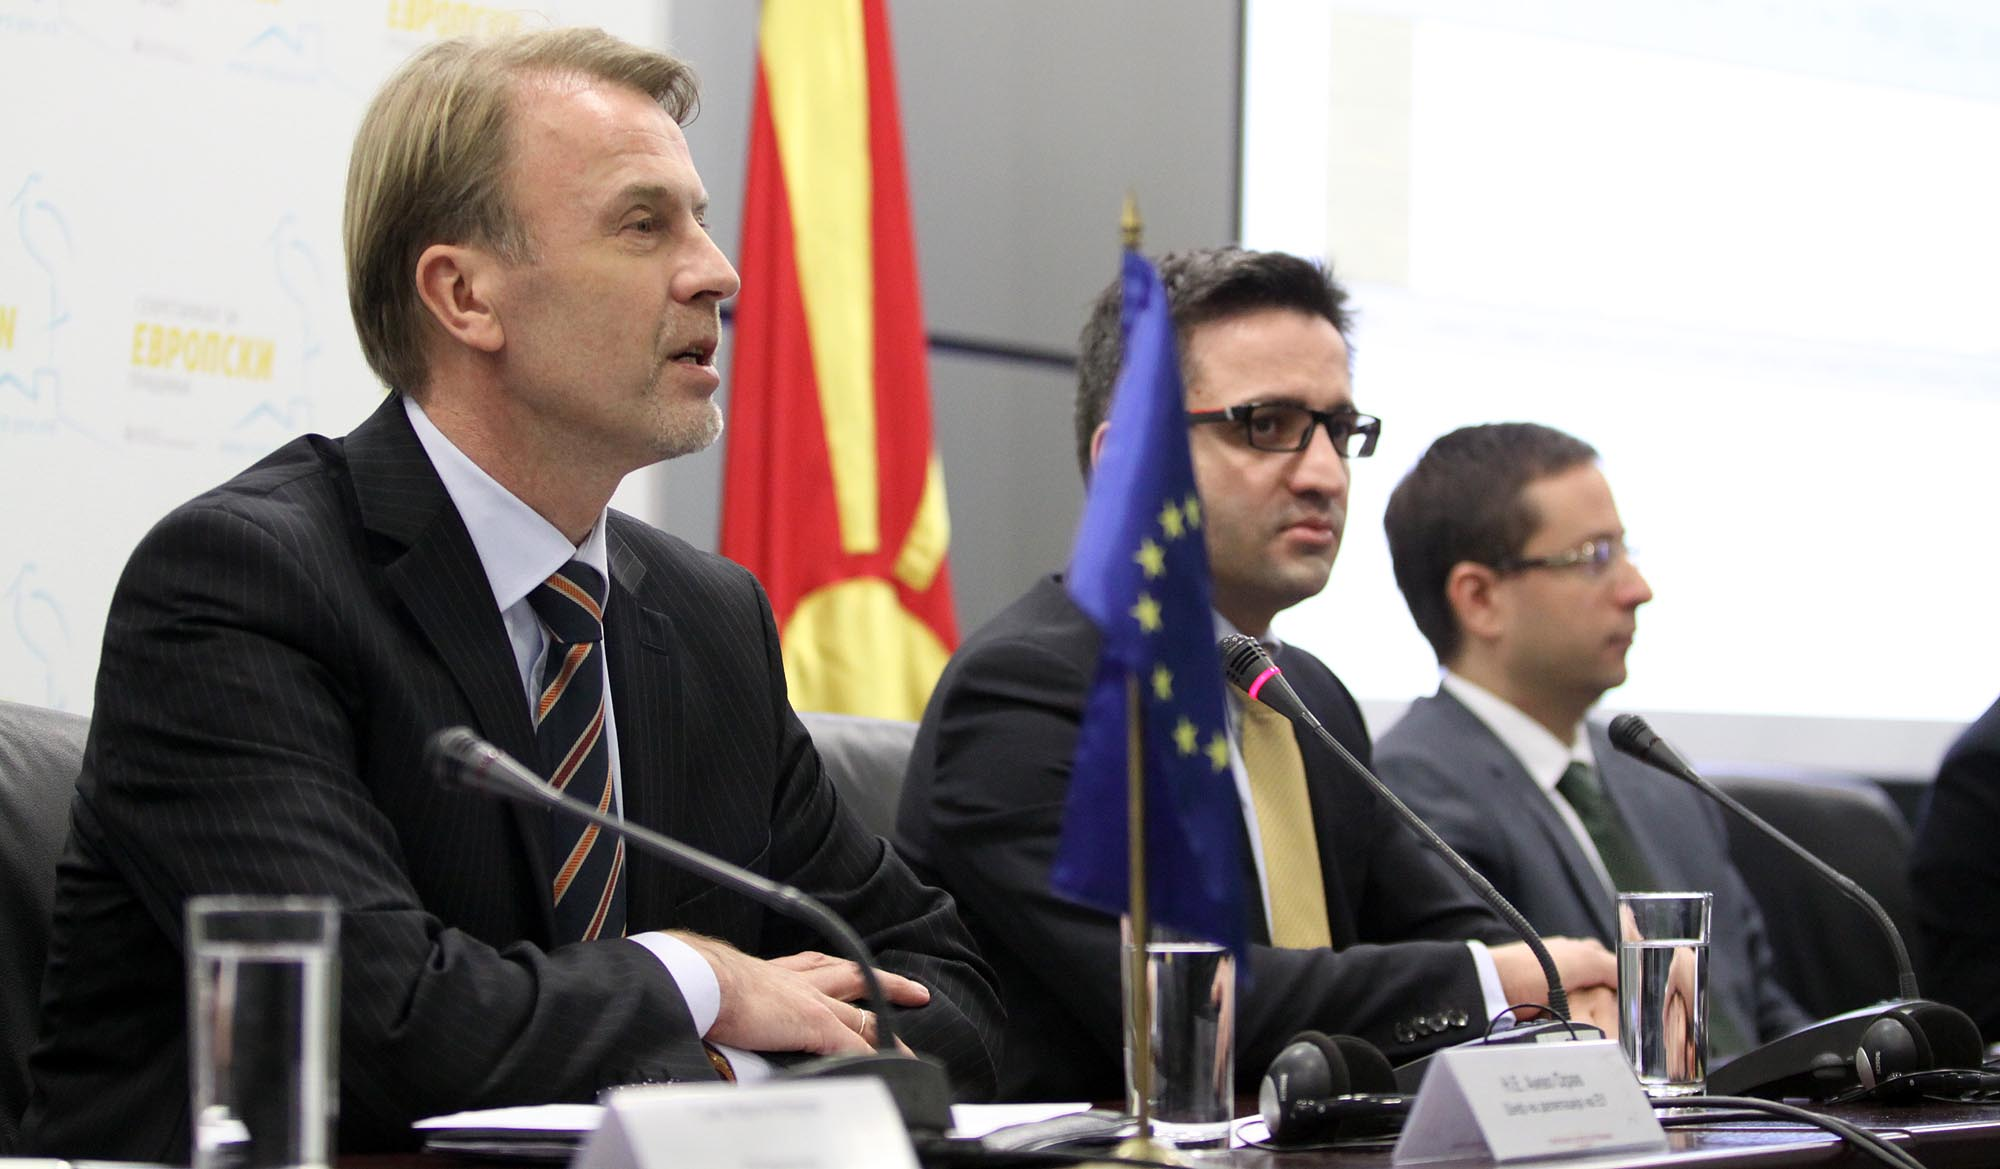 FYR Macedonia has a weak administration to attract IPA funds from the EU